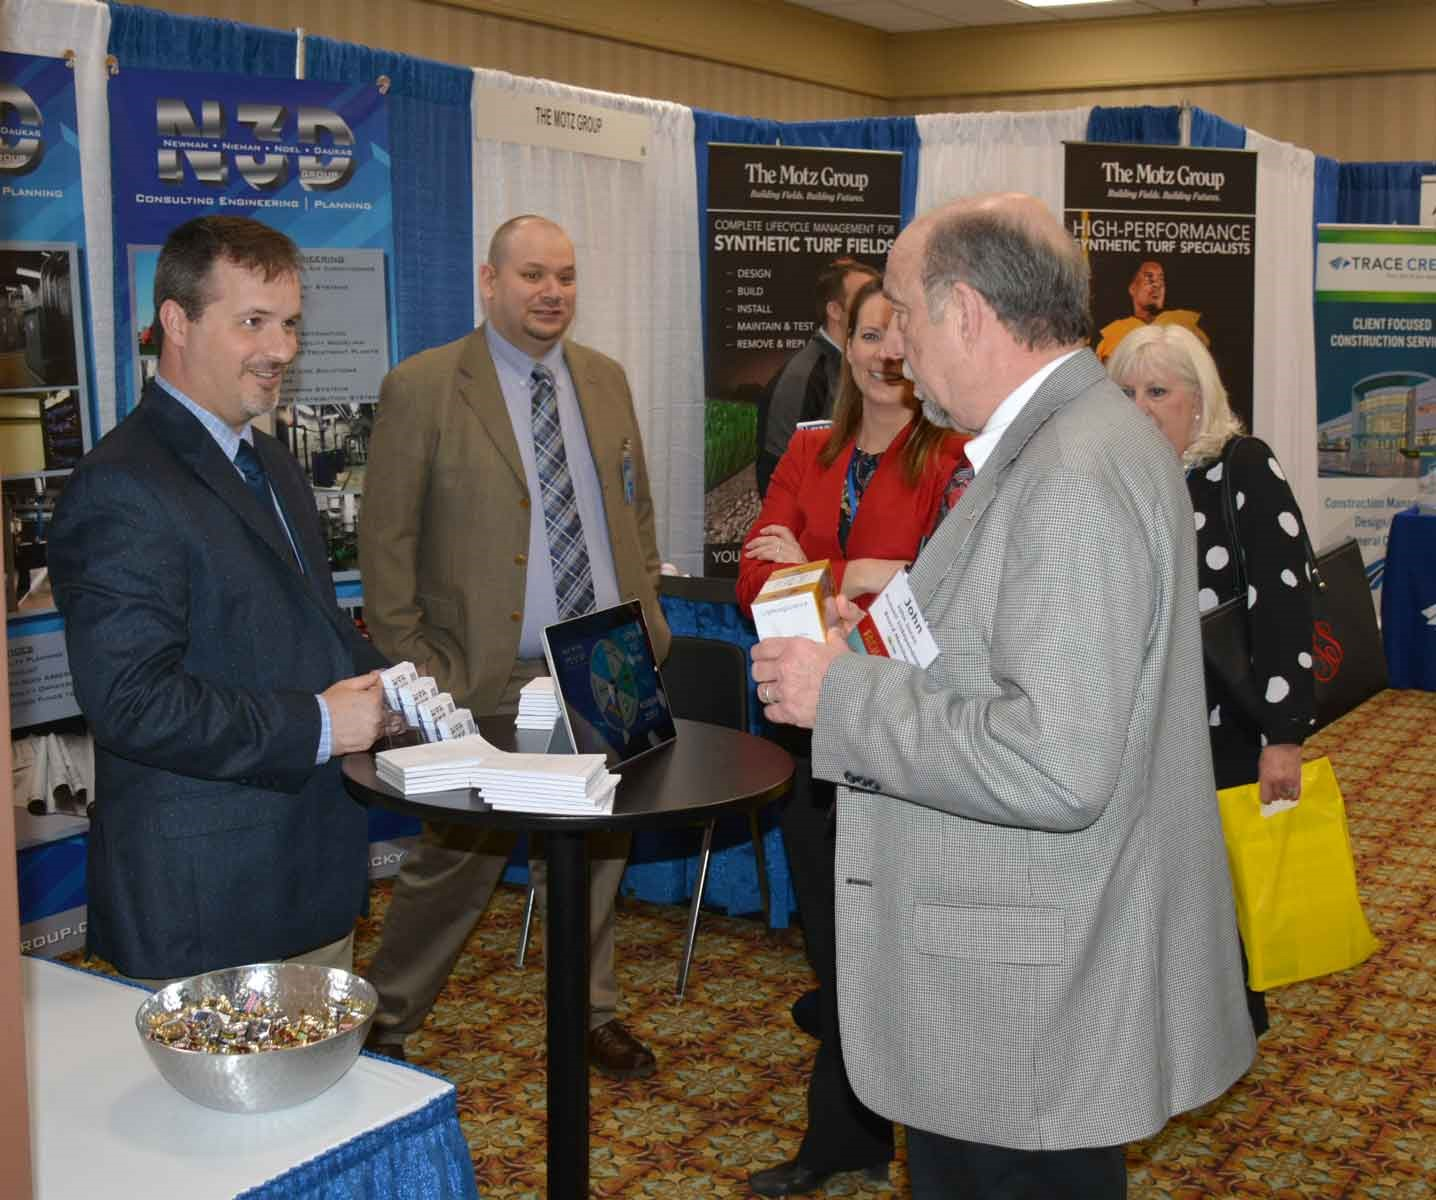 Russellville Independent board member INSERT NAME visits representatives of N3D Group Consulting Engineering and Planning of Lexington. More than 70 vendors had displays at the sold-out Trade Show.